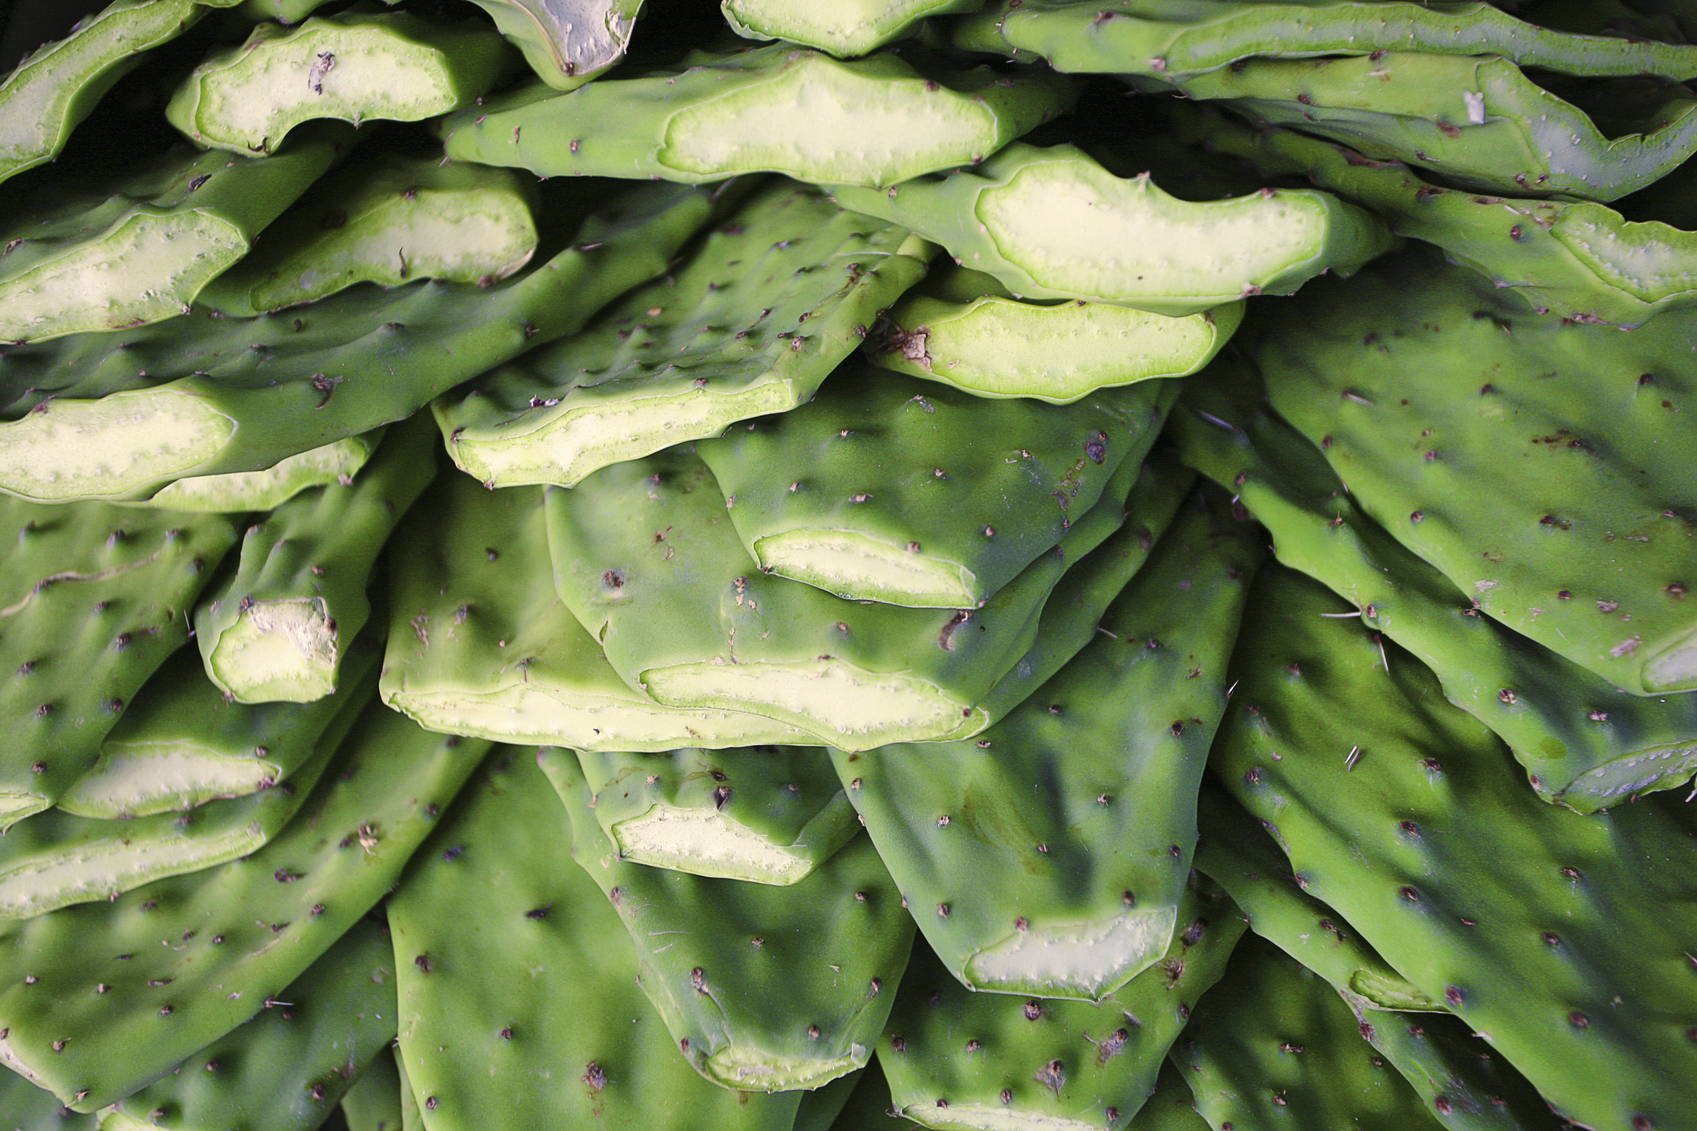 Nopales / Cactus paddles in market, San Francisco, California